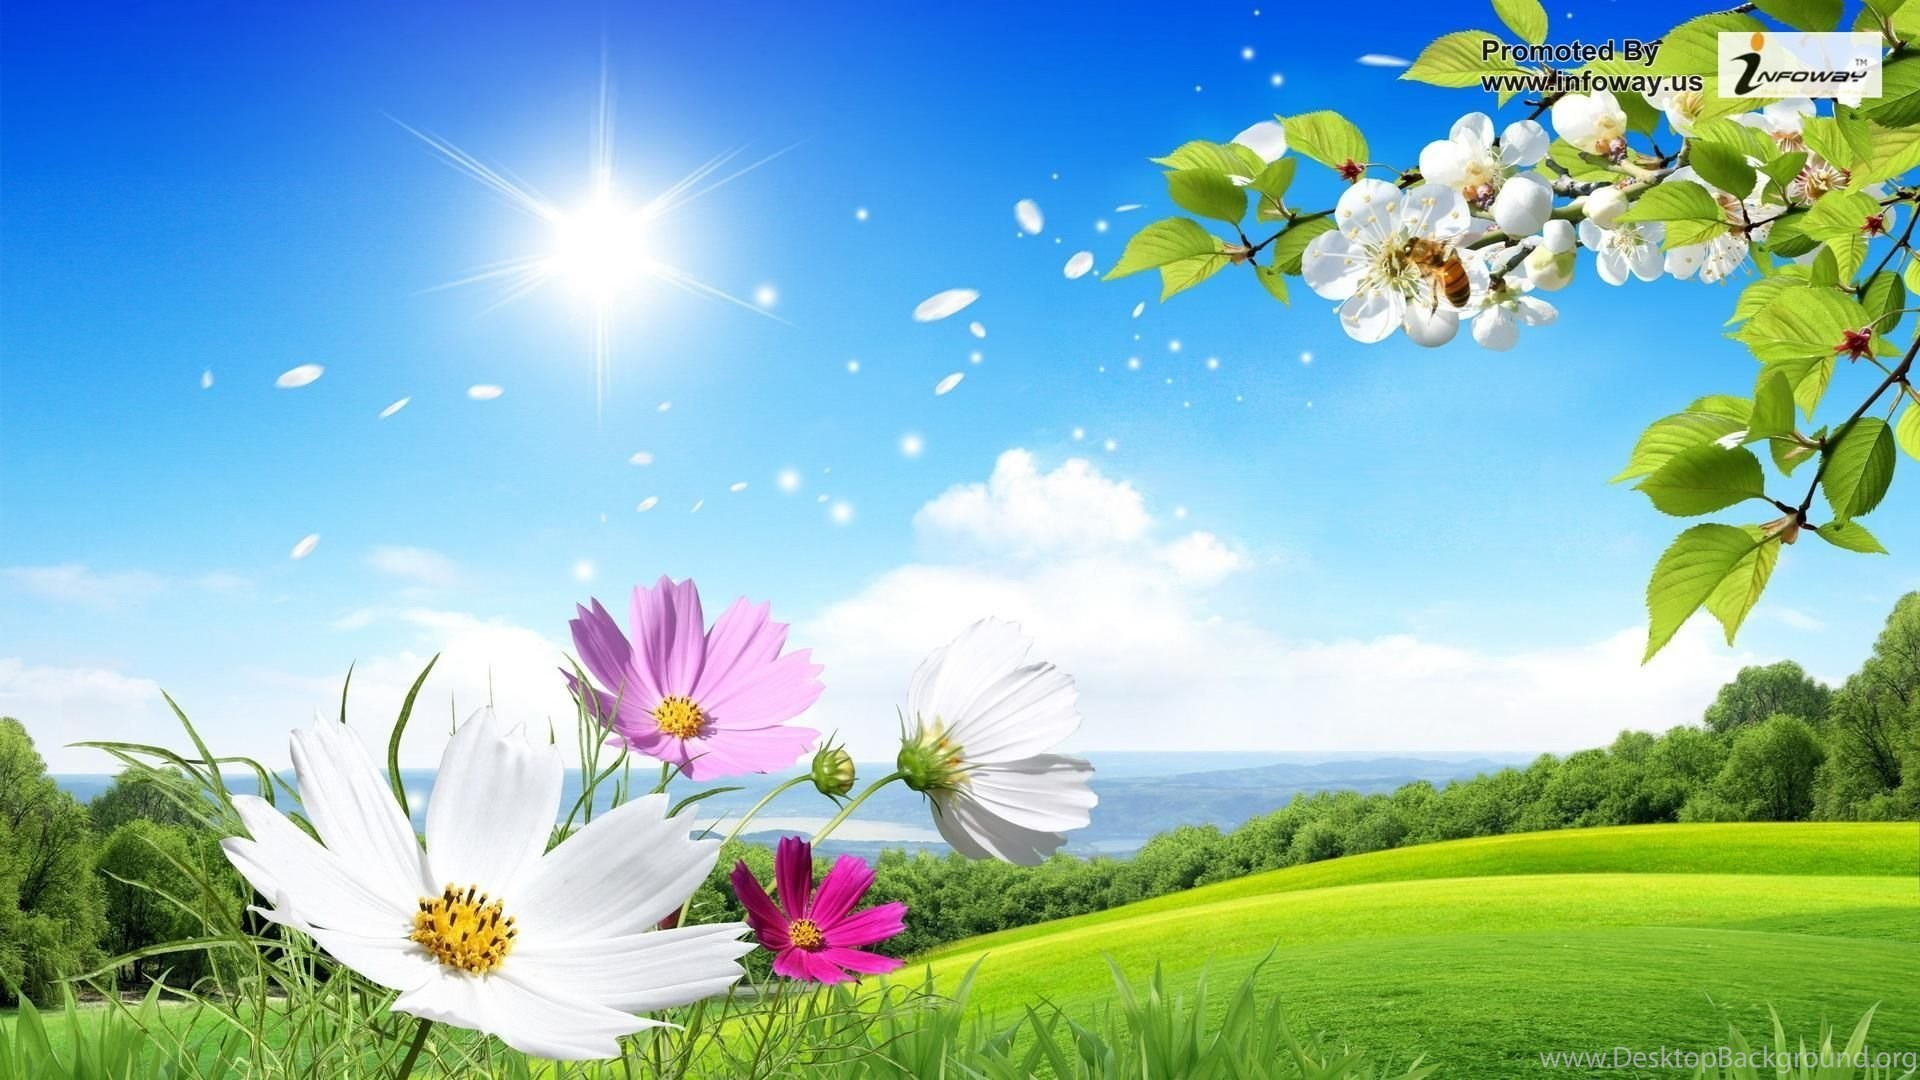 Hd Wallpapers Desktop Wallpaper Summer Flowers Beautiful Scenery